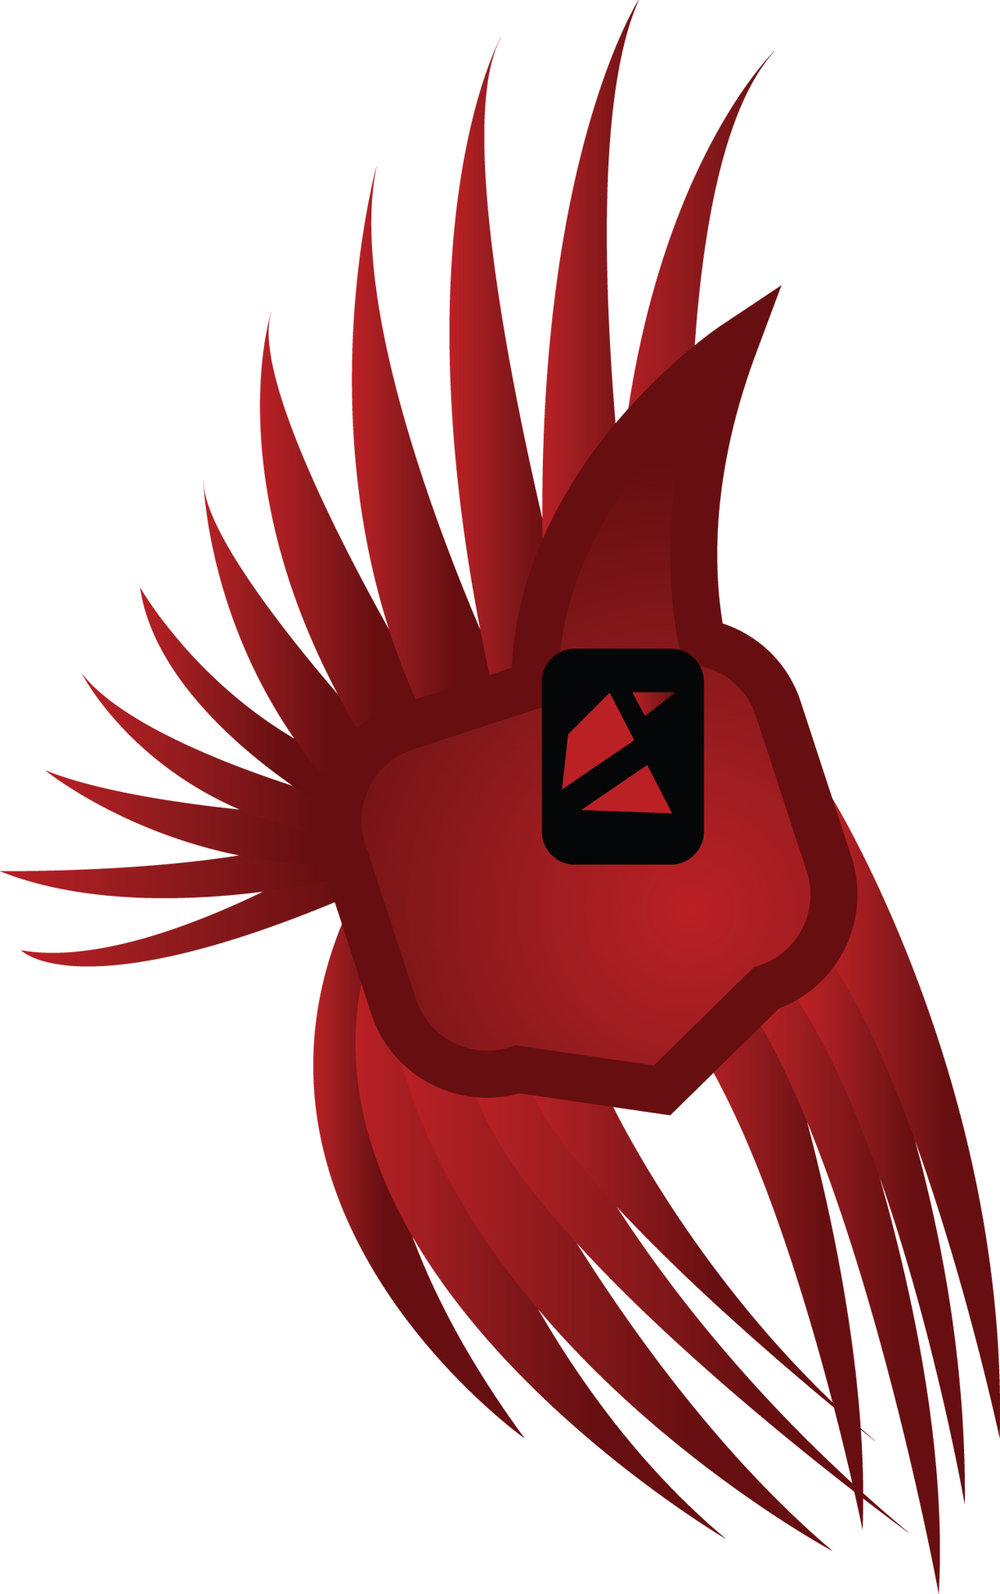 Arizona Cardinals logo redux